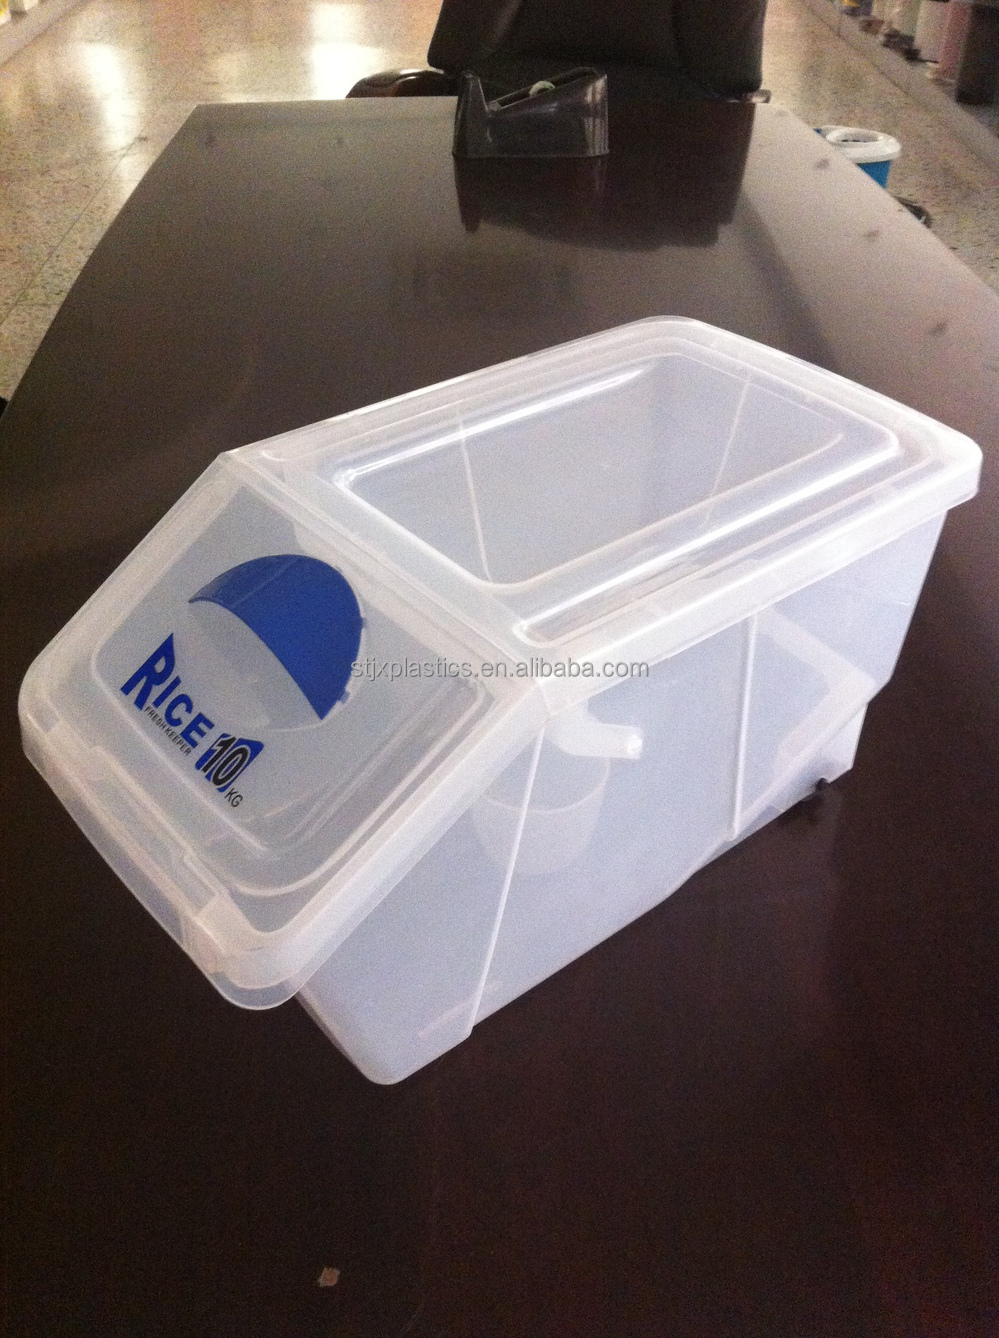 10kg Plastic Rice Bin Food Storage Container With Flip